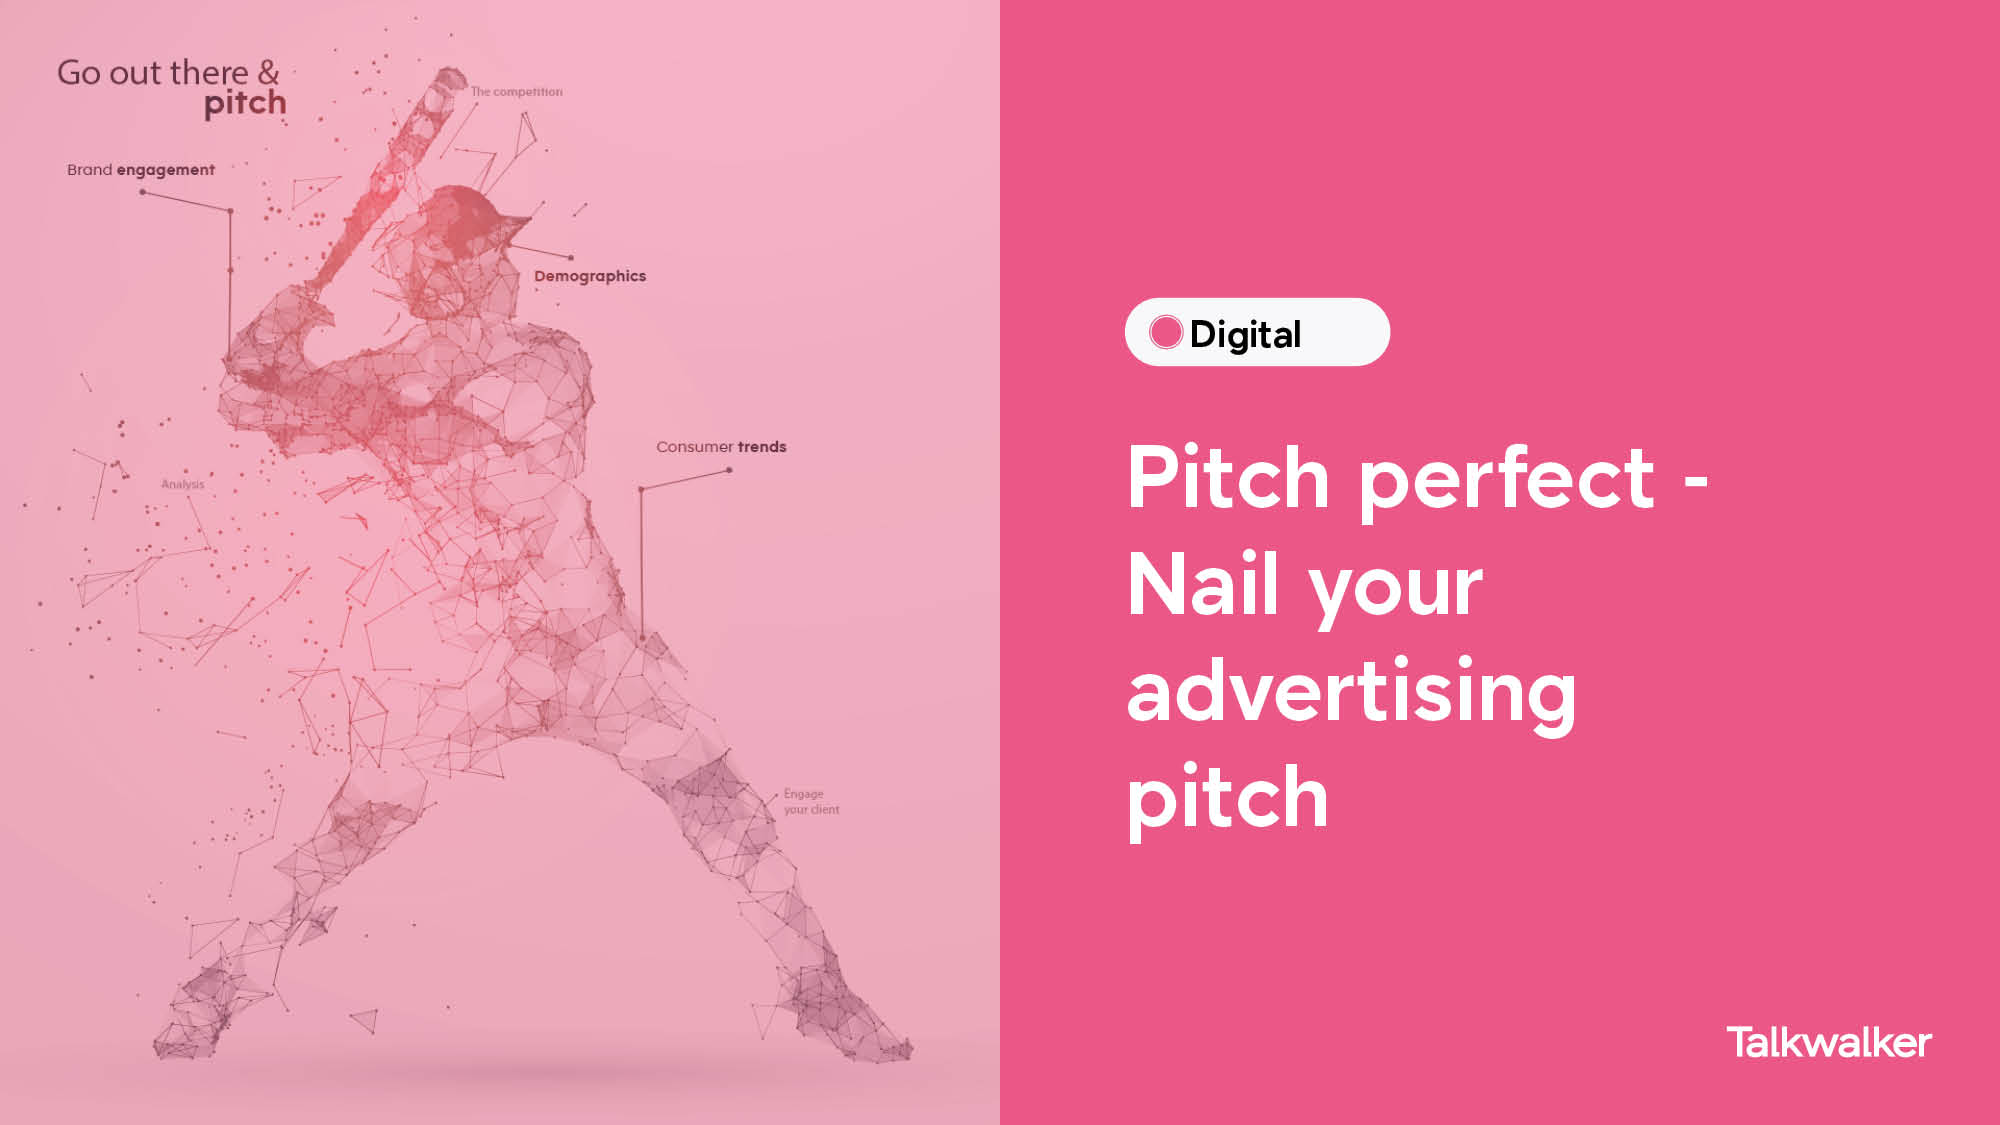 Perfect pitch - Nail your advertising pitch: baseball player batting